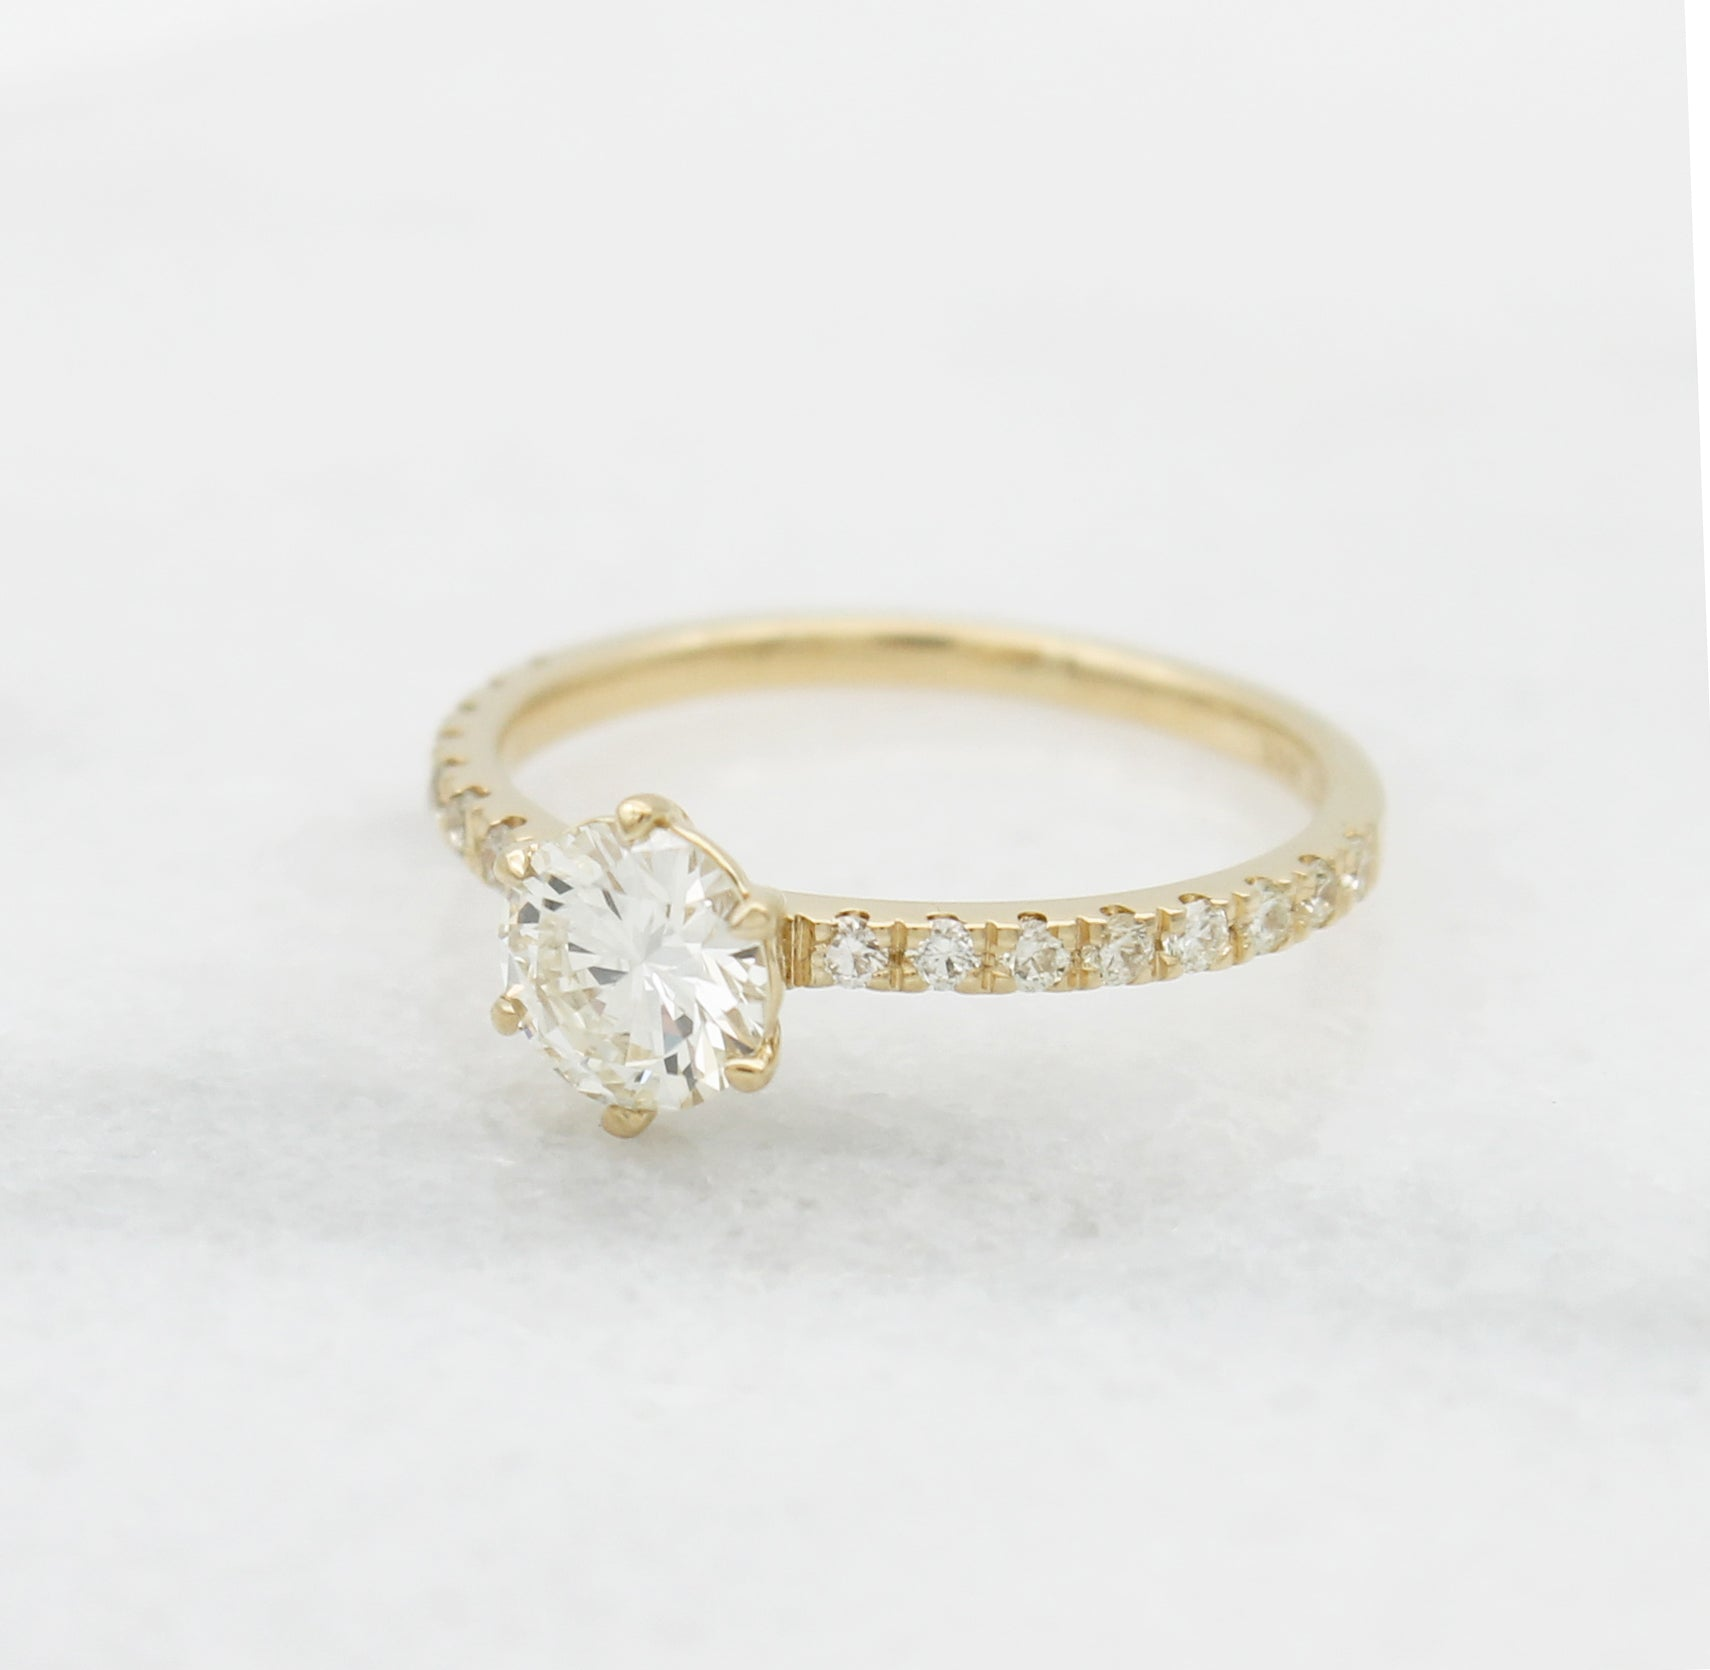 Round Diamond engagement ring pave set solitaire dainty yellow gold 18K